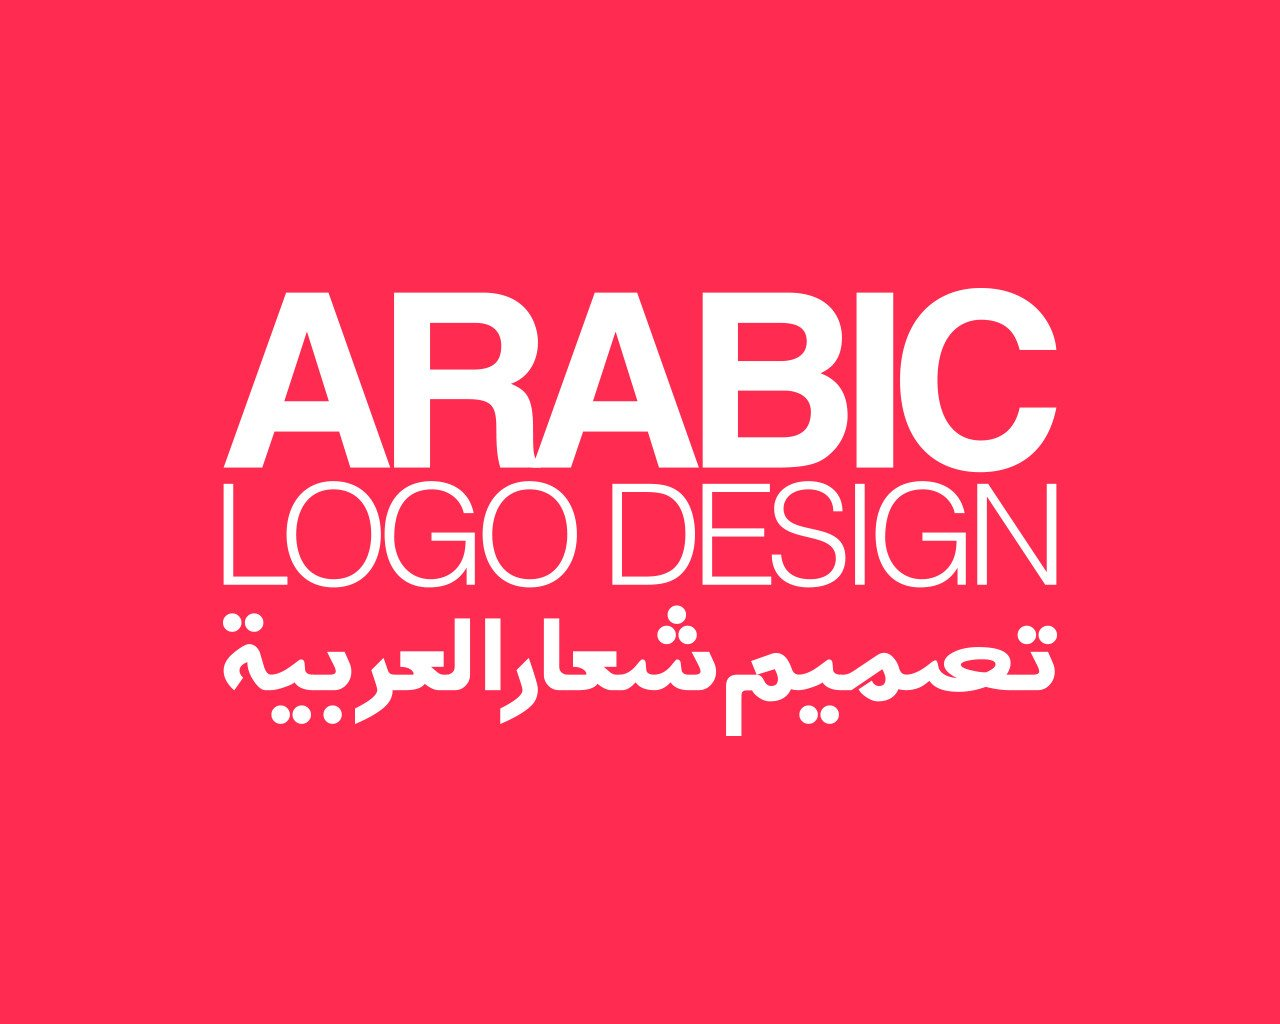 Arabic logo design calligraphy by cre on